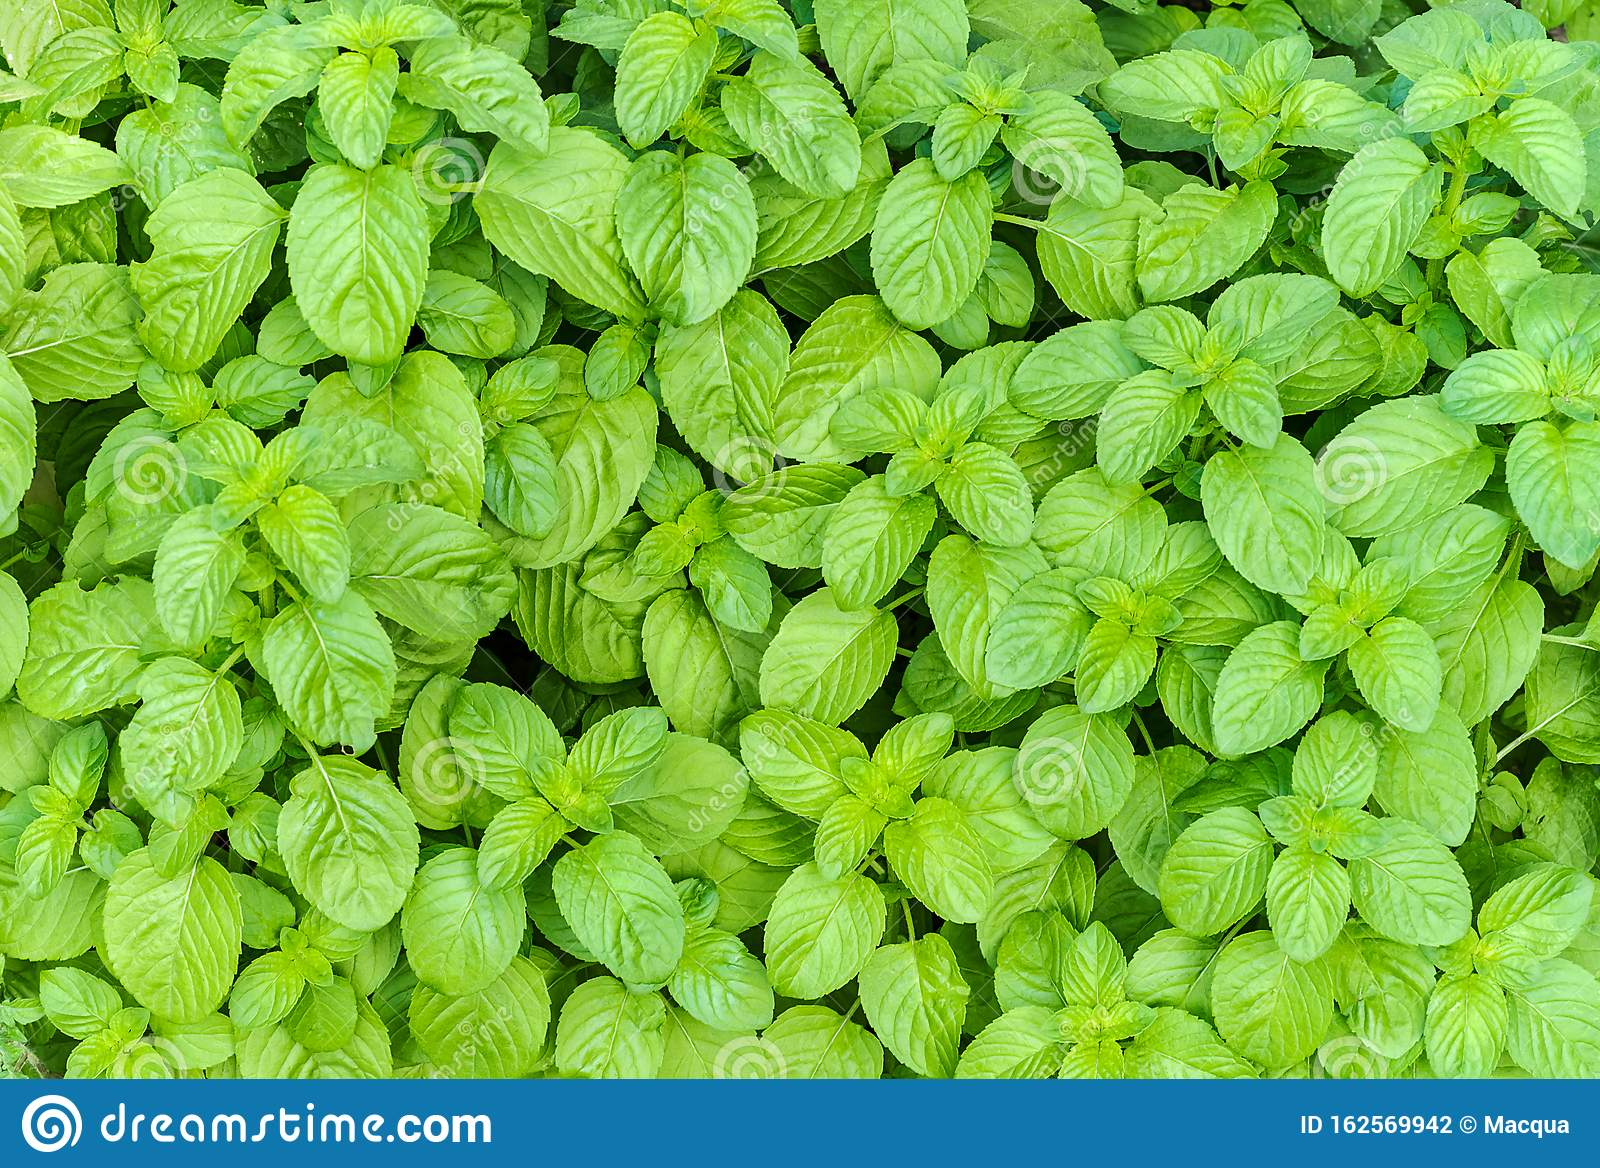 Top view of cultivation of organic mint